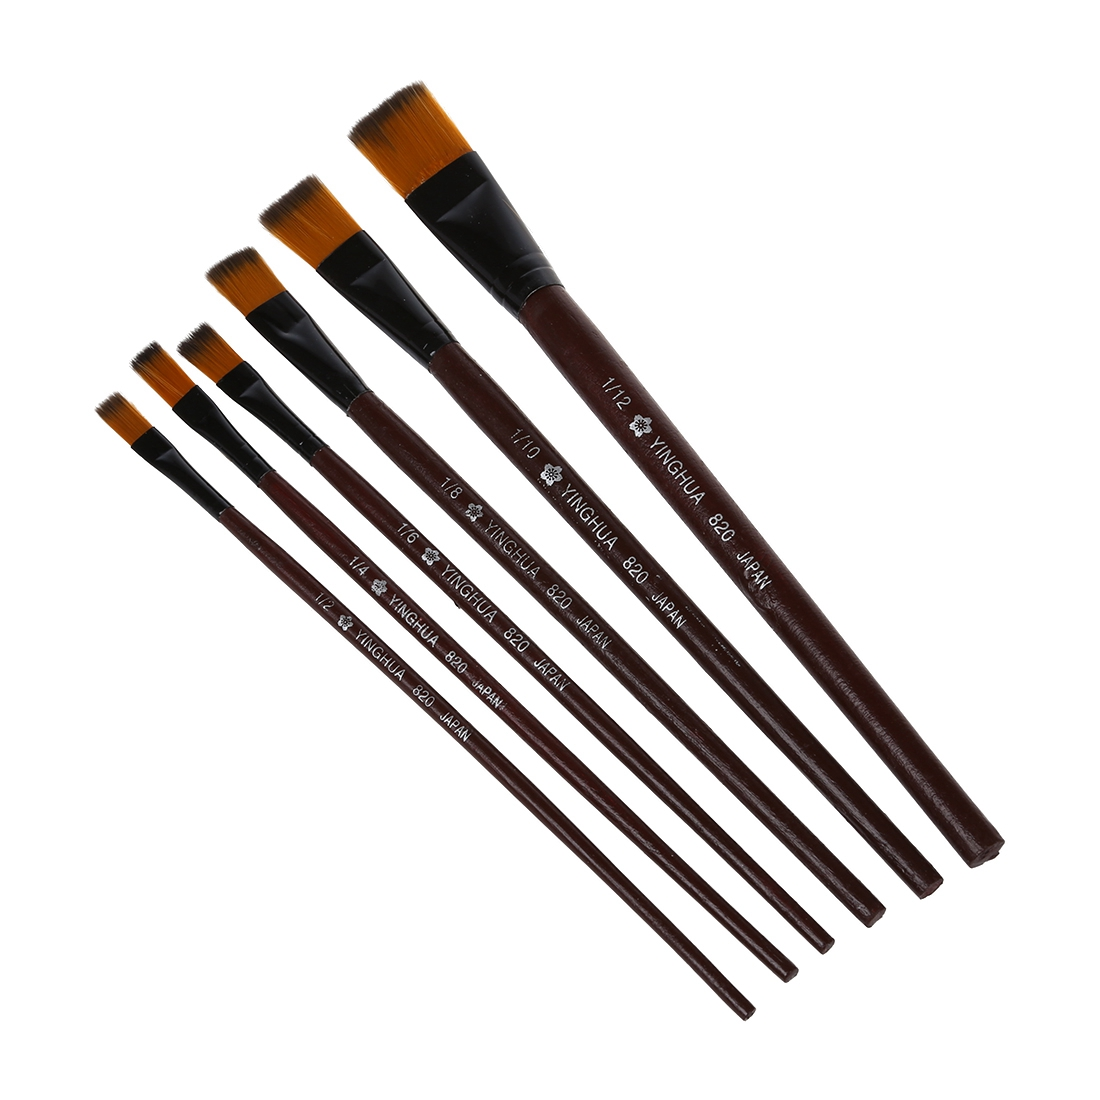 NHBR-Pack of 6 Art Brown Nylon Paint Brushes for Acrylic